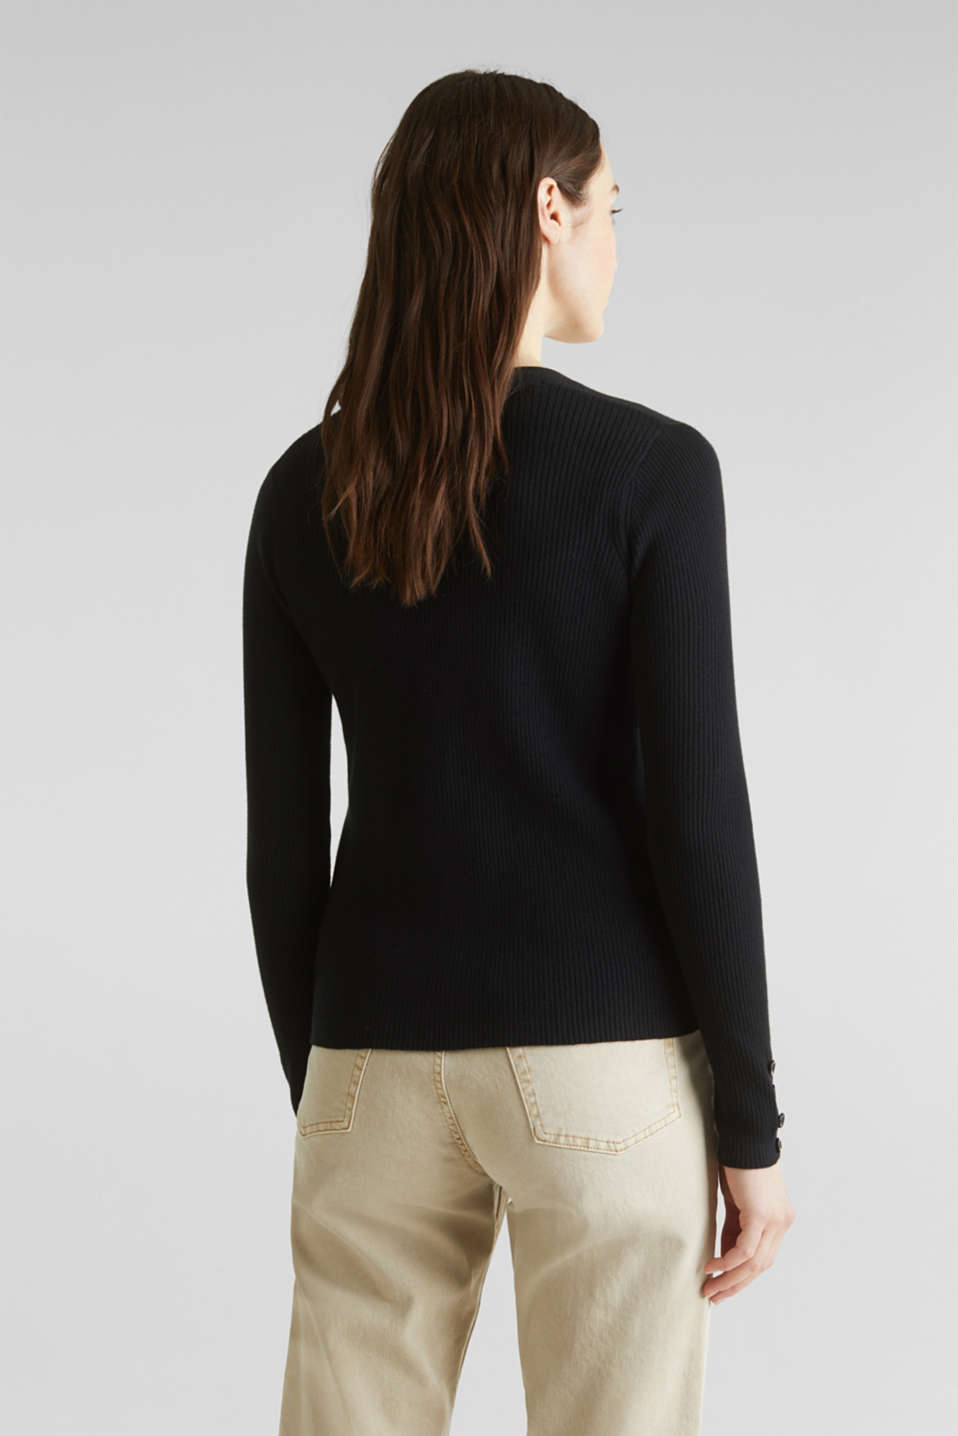 With silk: Ribbed knit cardigan, BLACK, detail image number 3